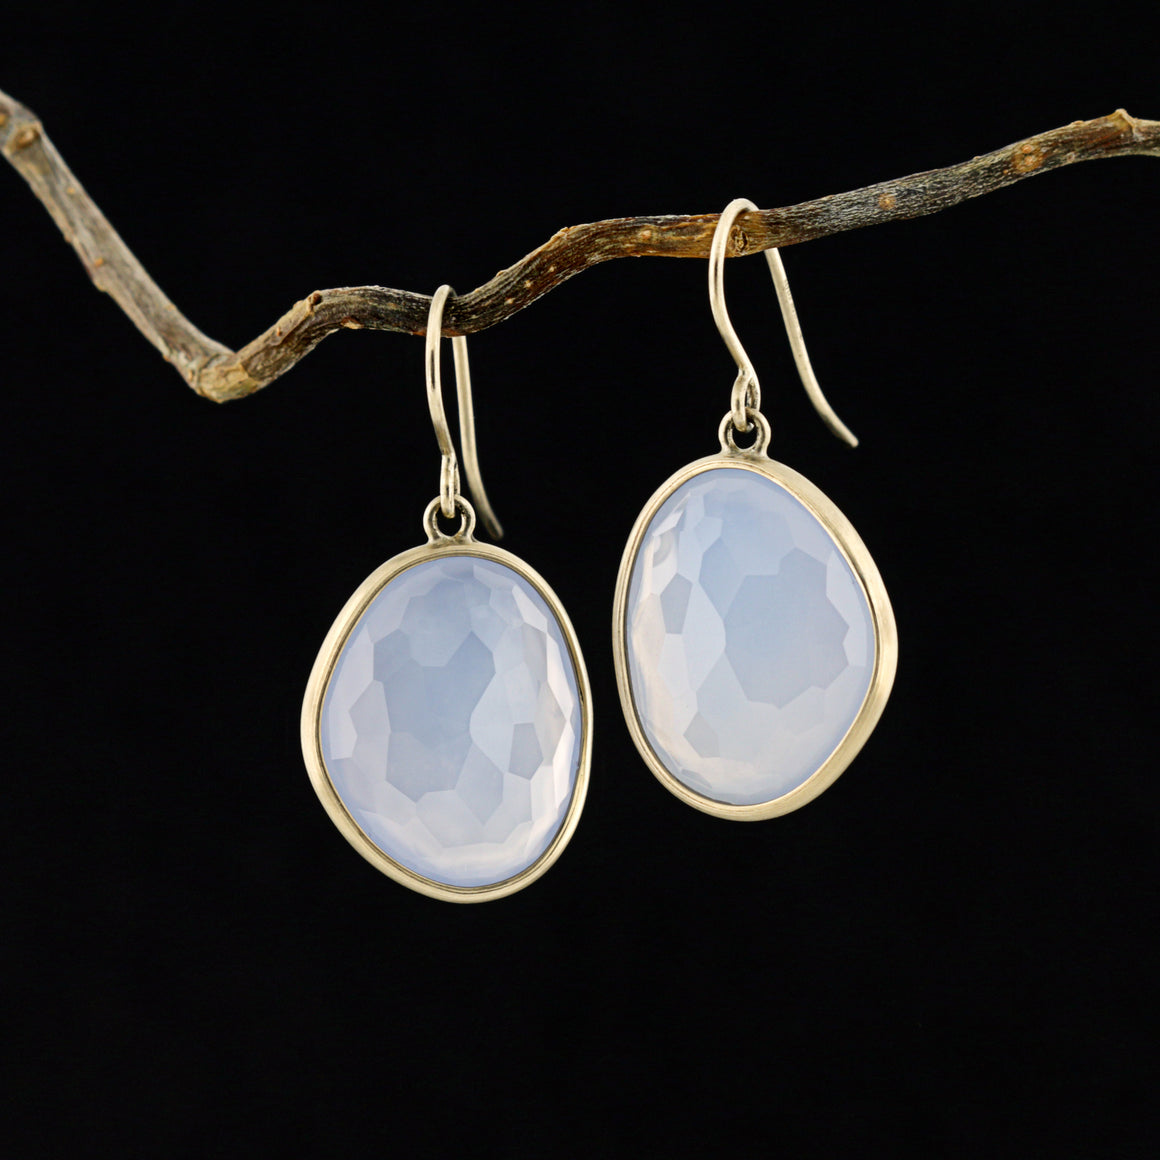 Piedras Earrings with Lavender Chalcedony - Medium